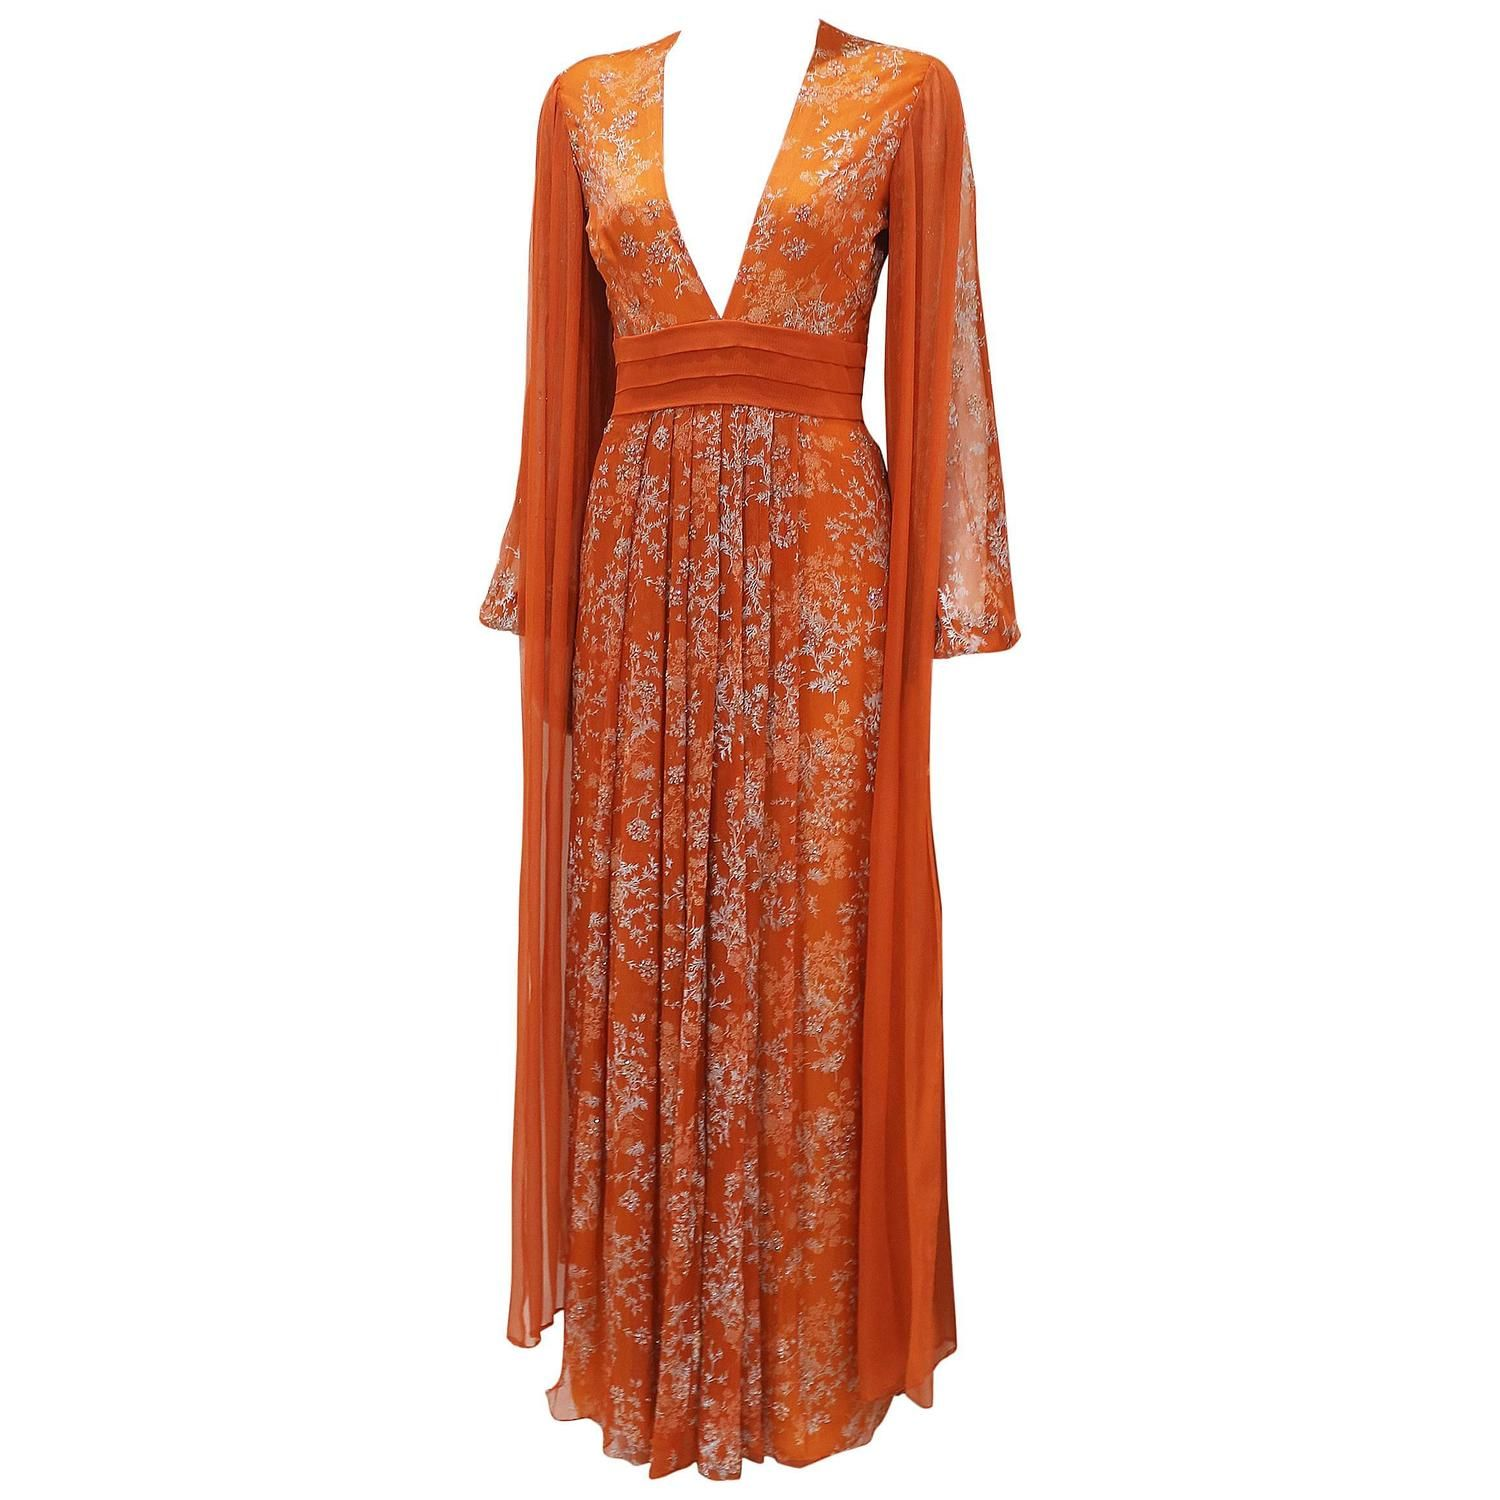 Thea Porter Couture silk chiffon evening dress, c. early 1970s 1